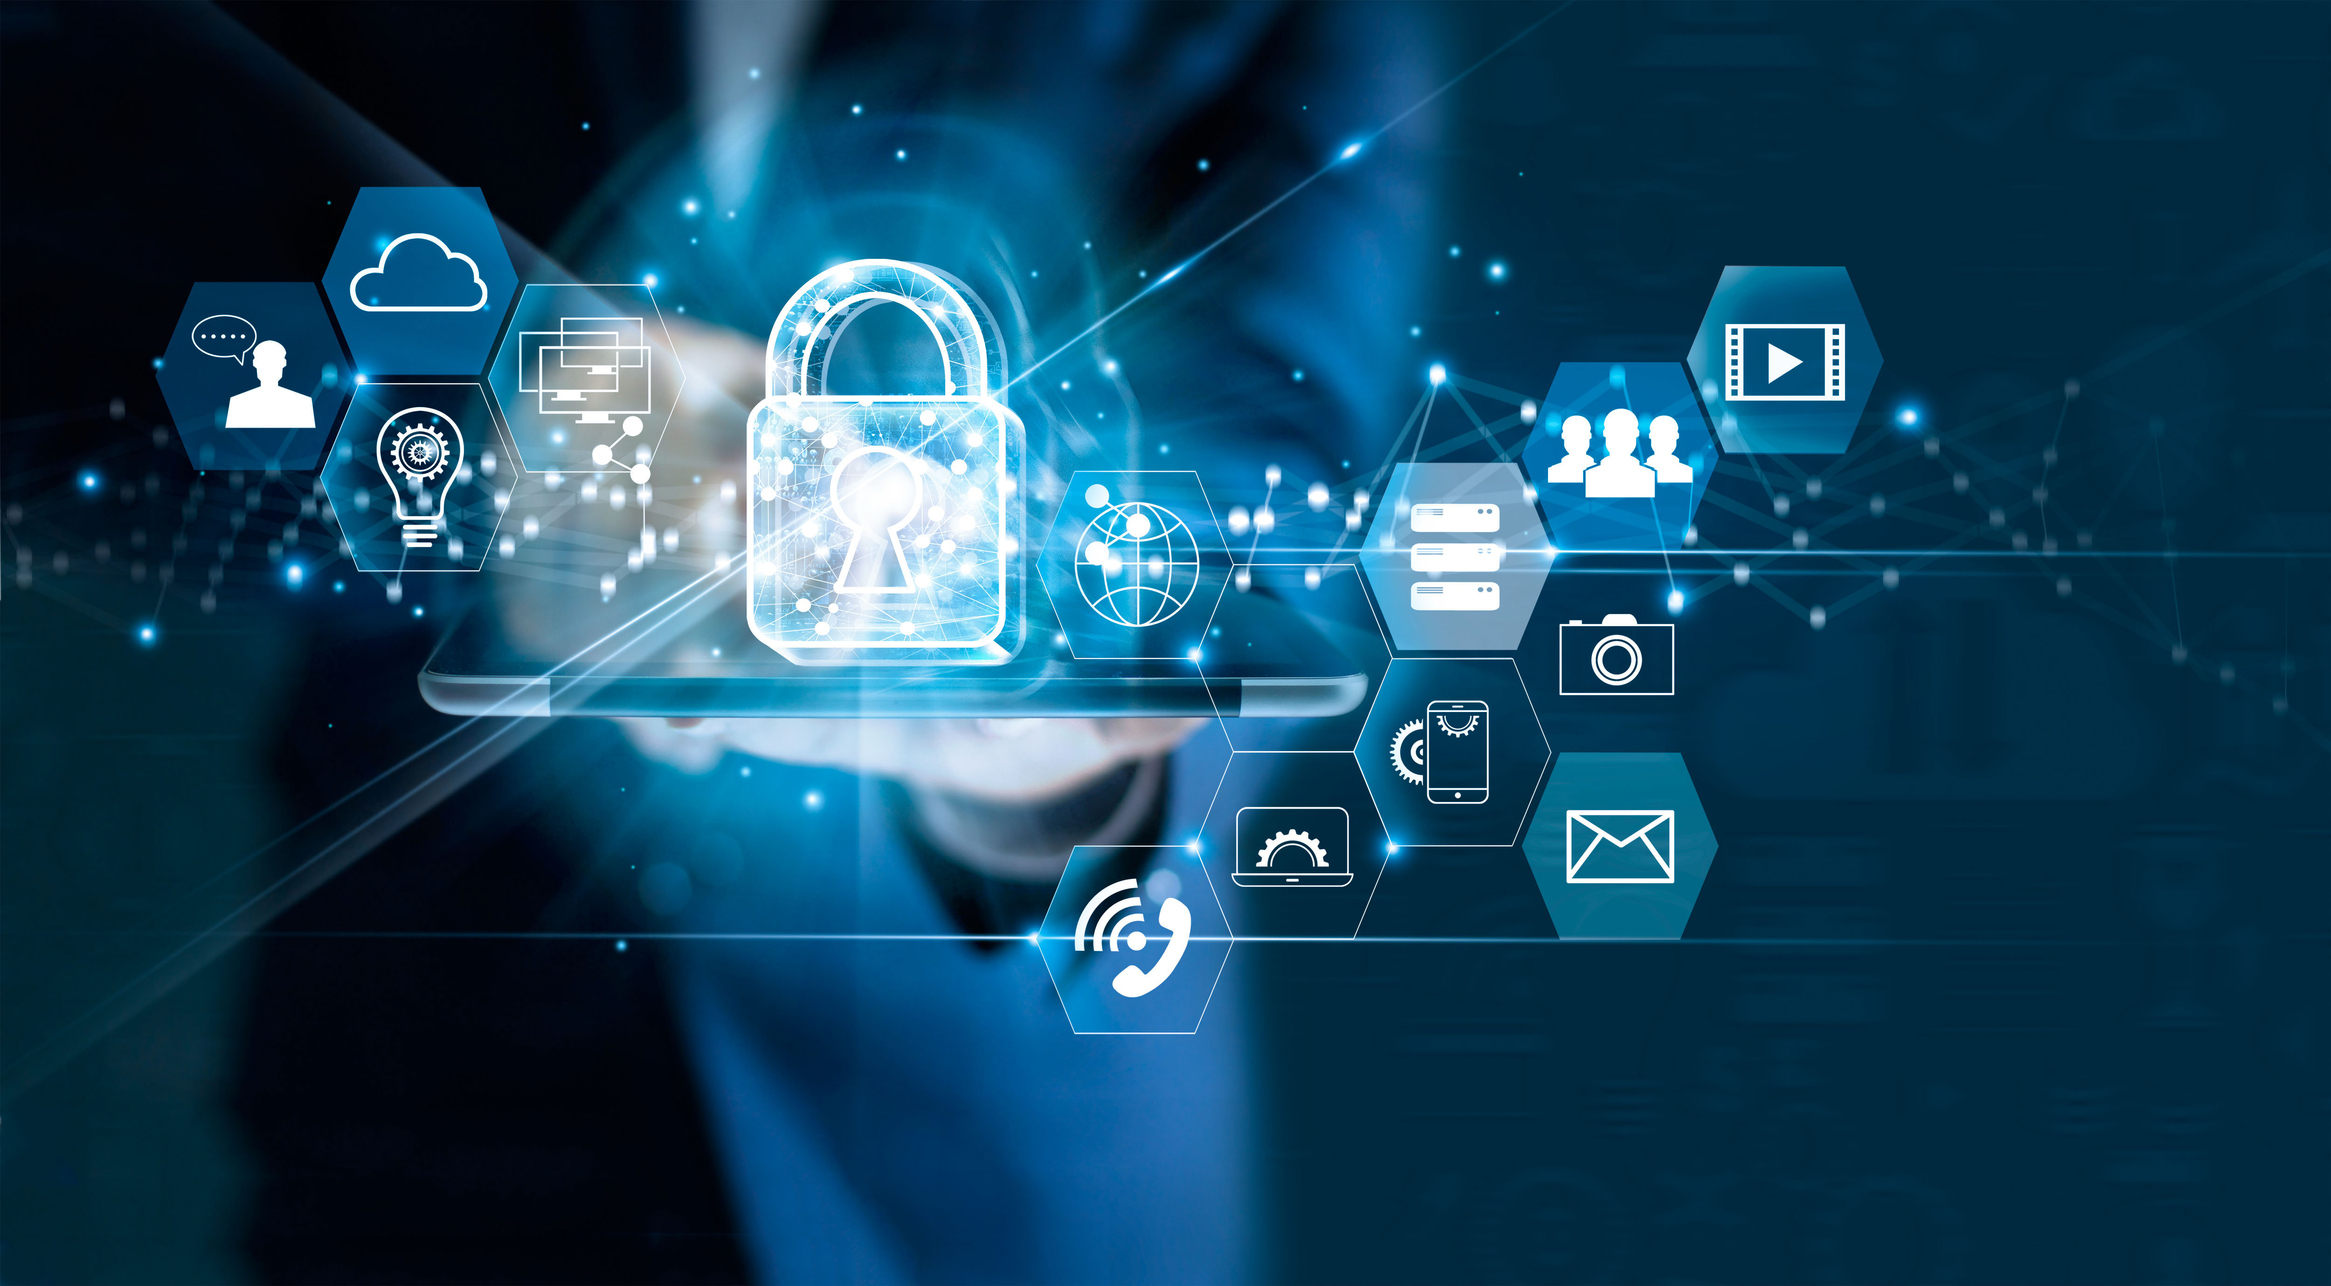 Cyber Safety And Security, Some Valuable Tips